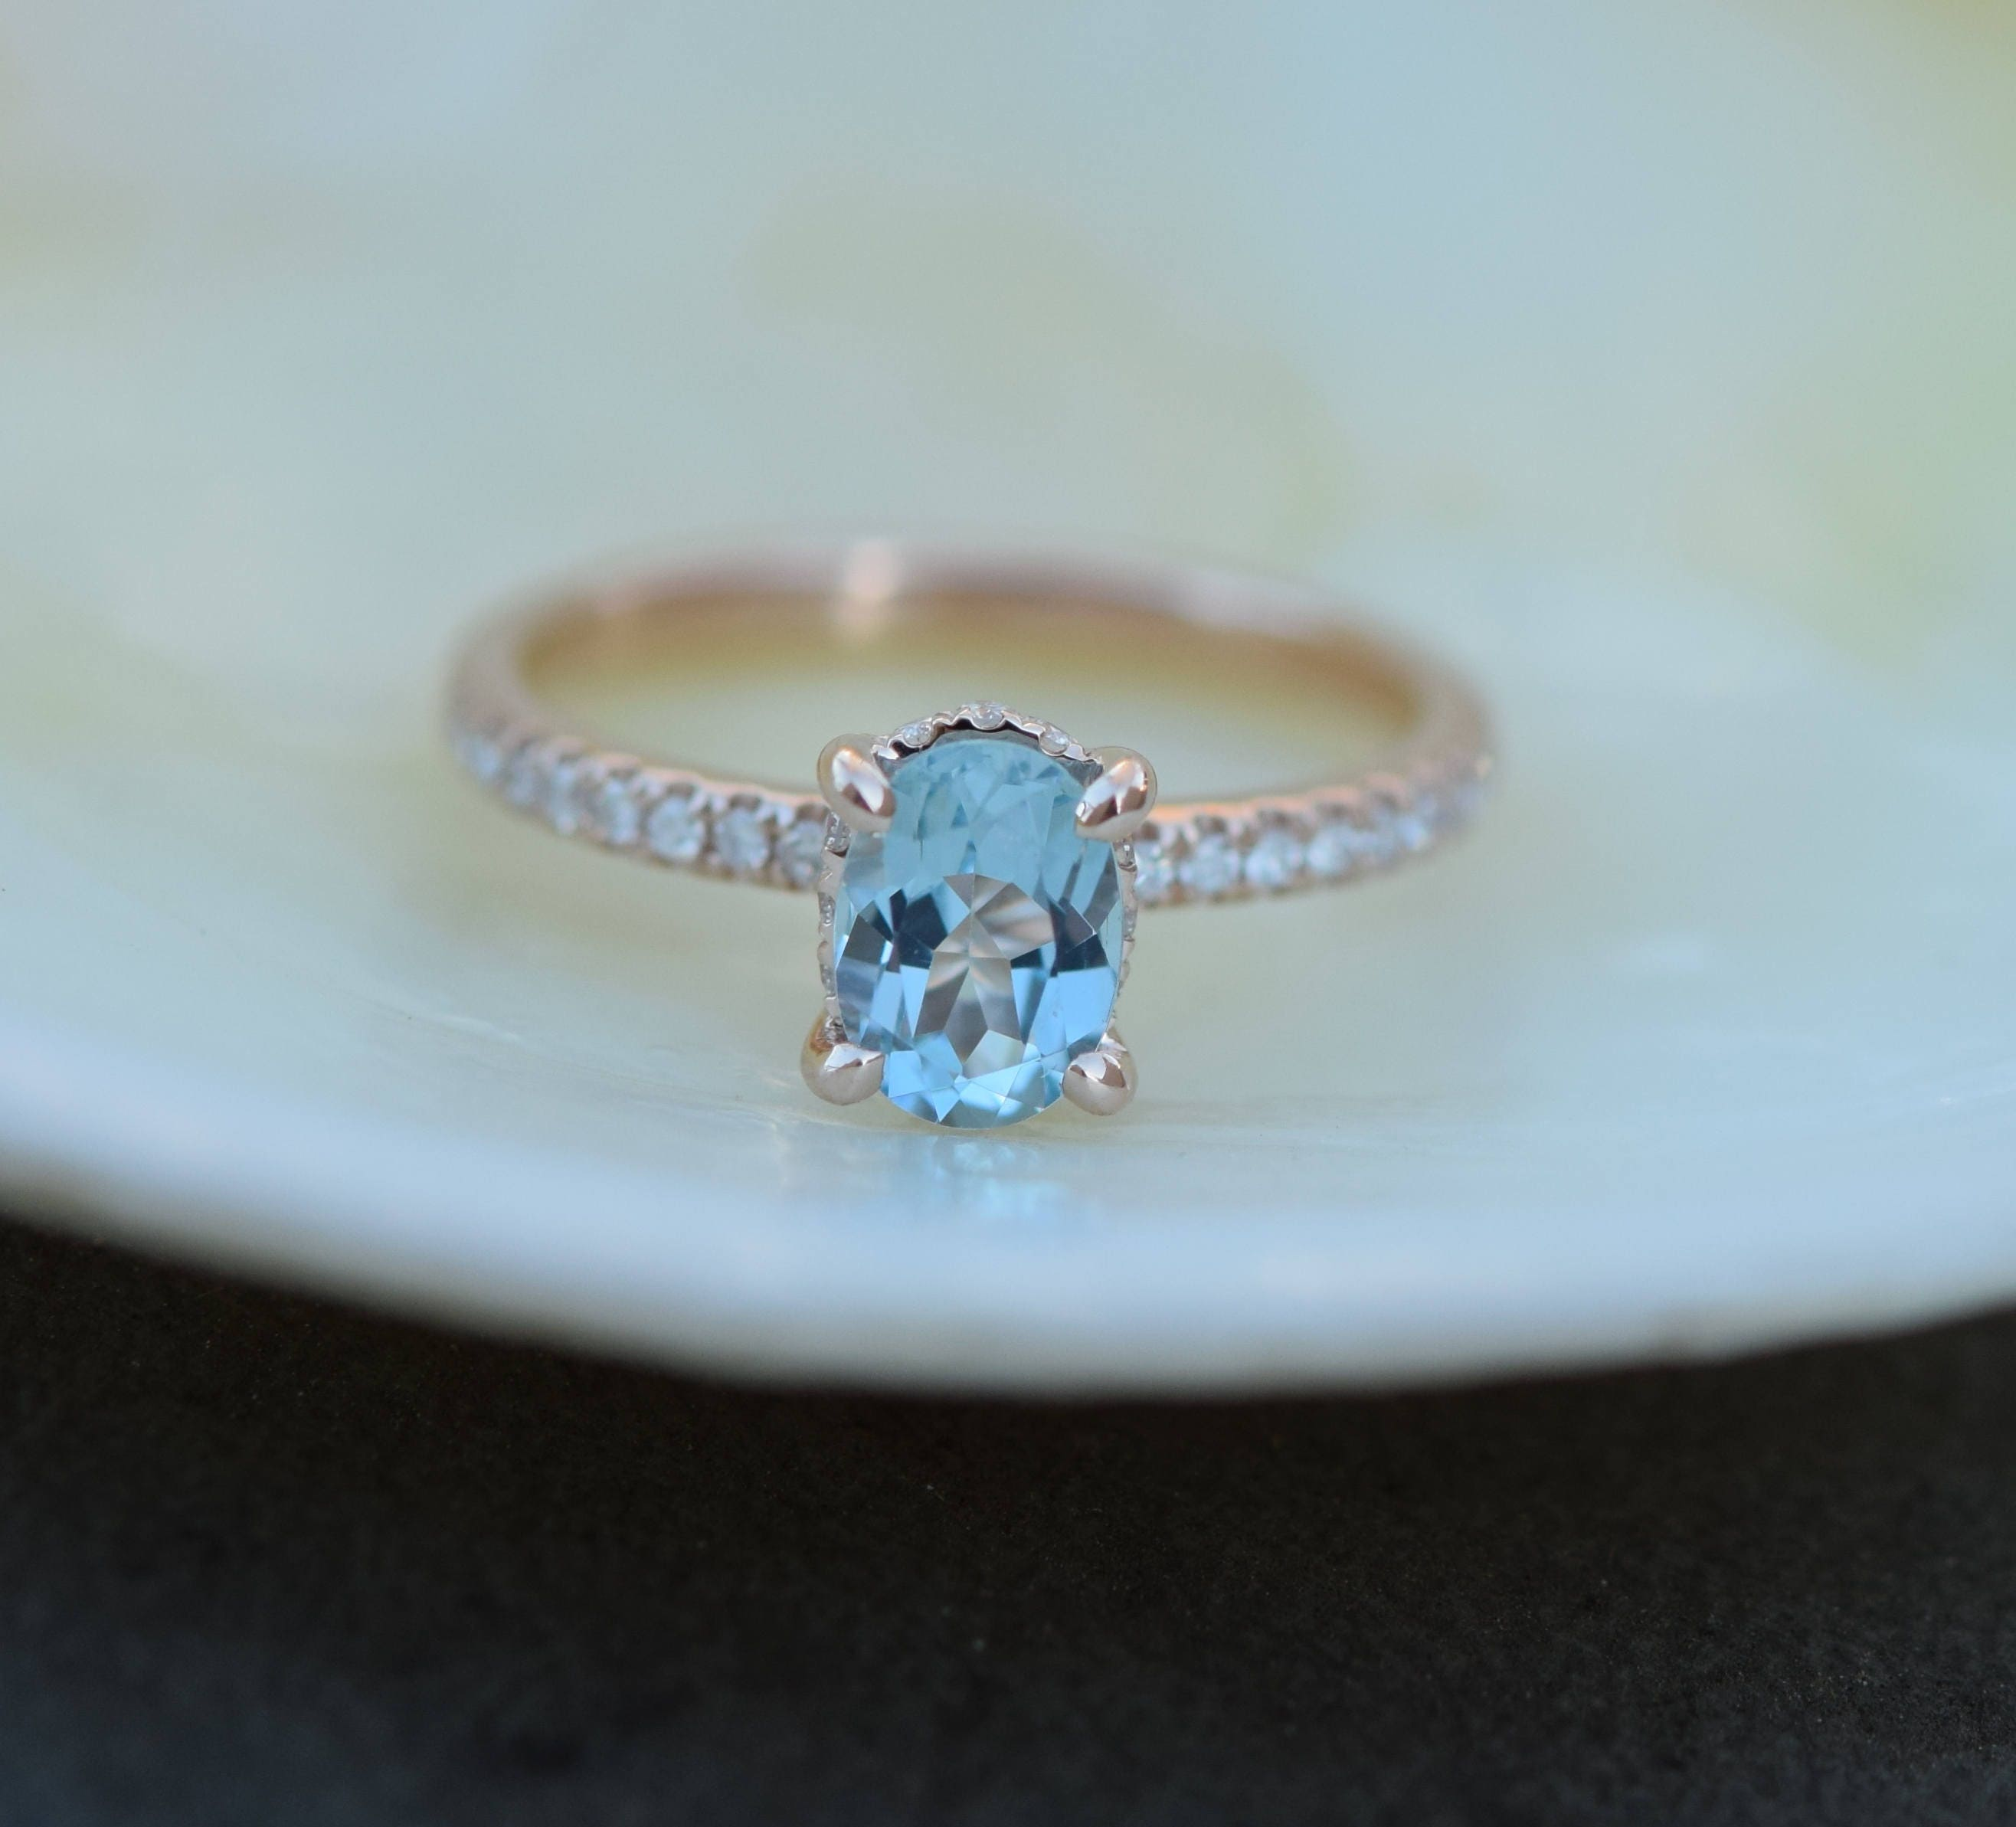 floor aqua emitter halo gold blue center light metal round white sapphire shop stone ring ctw render marquise engagement prong with